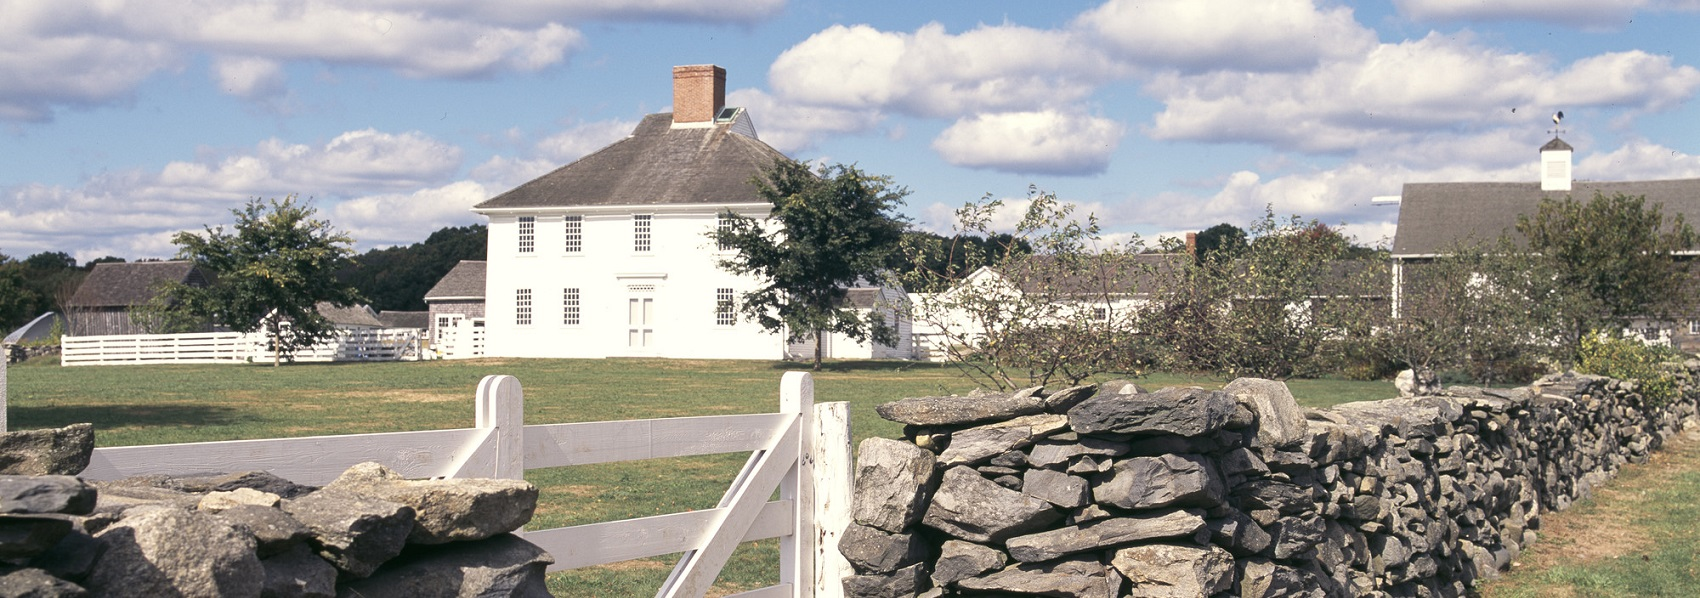 Farmhouse, barn, and stone wall at Casey Farm